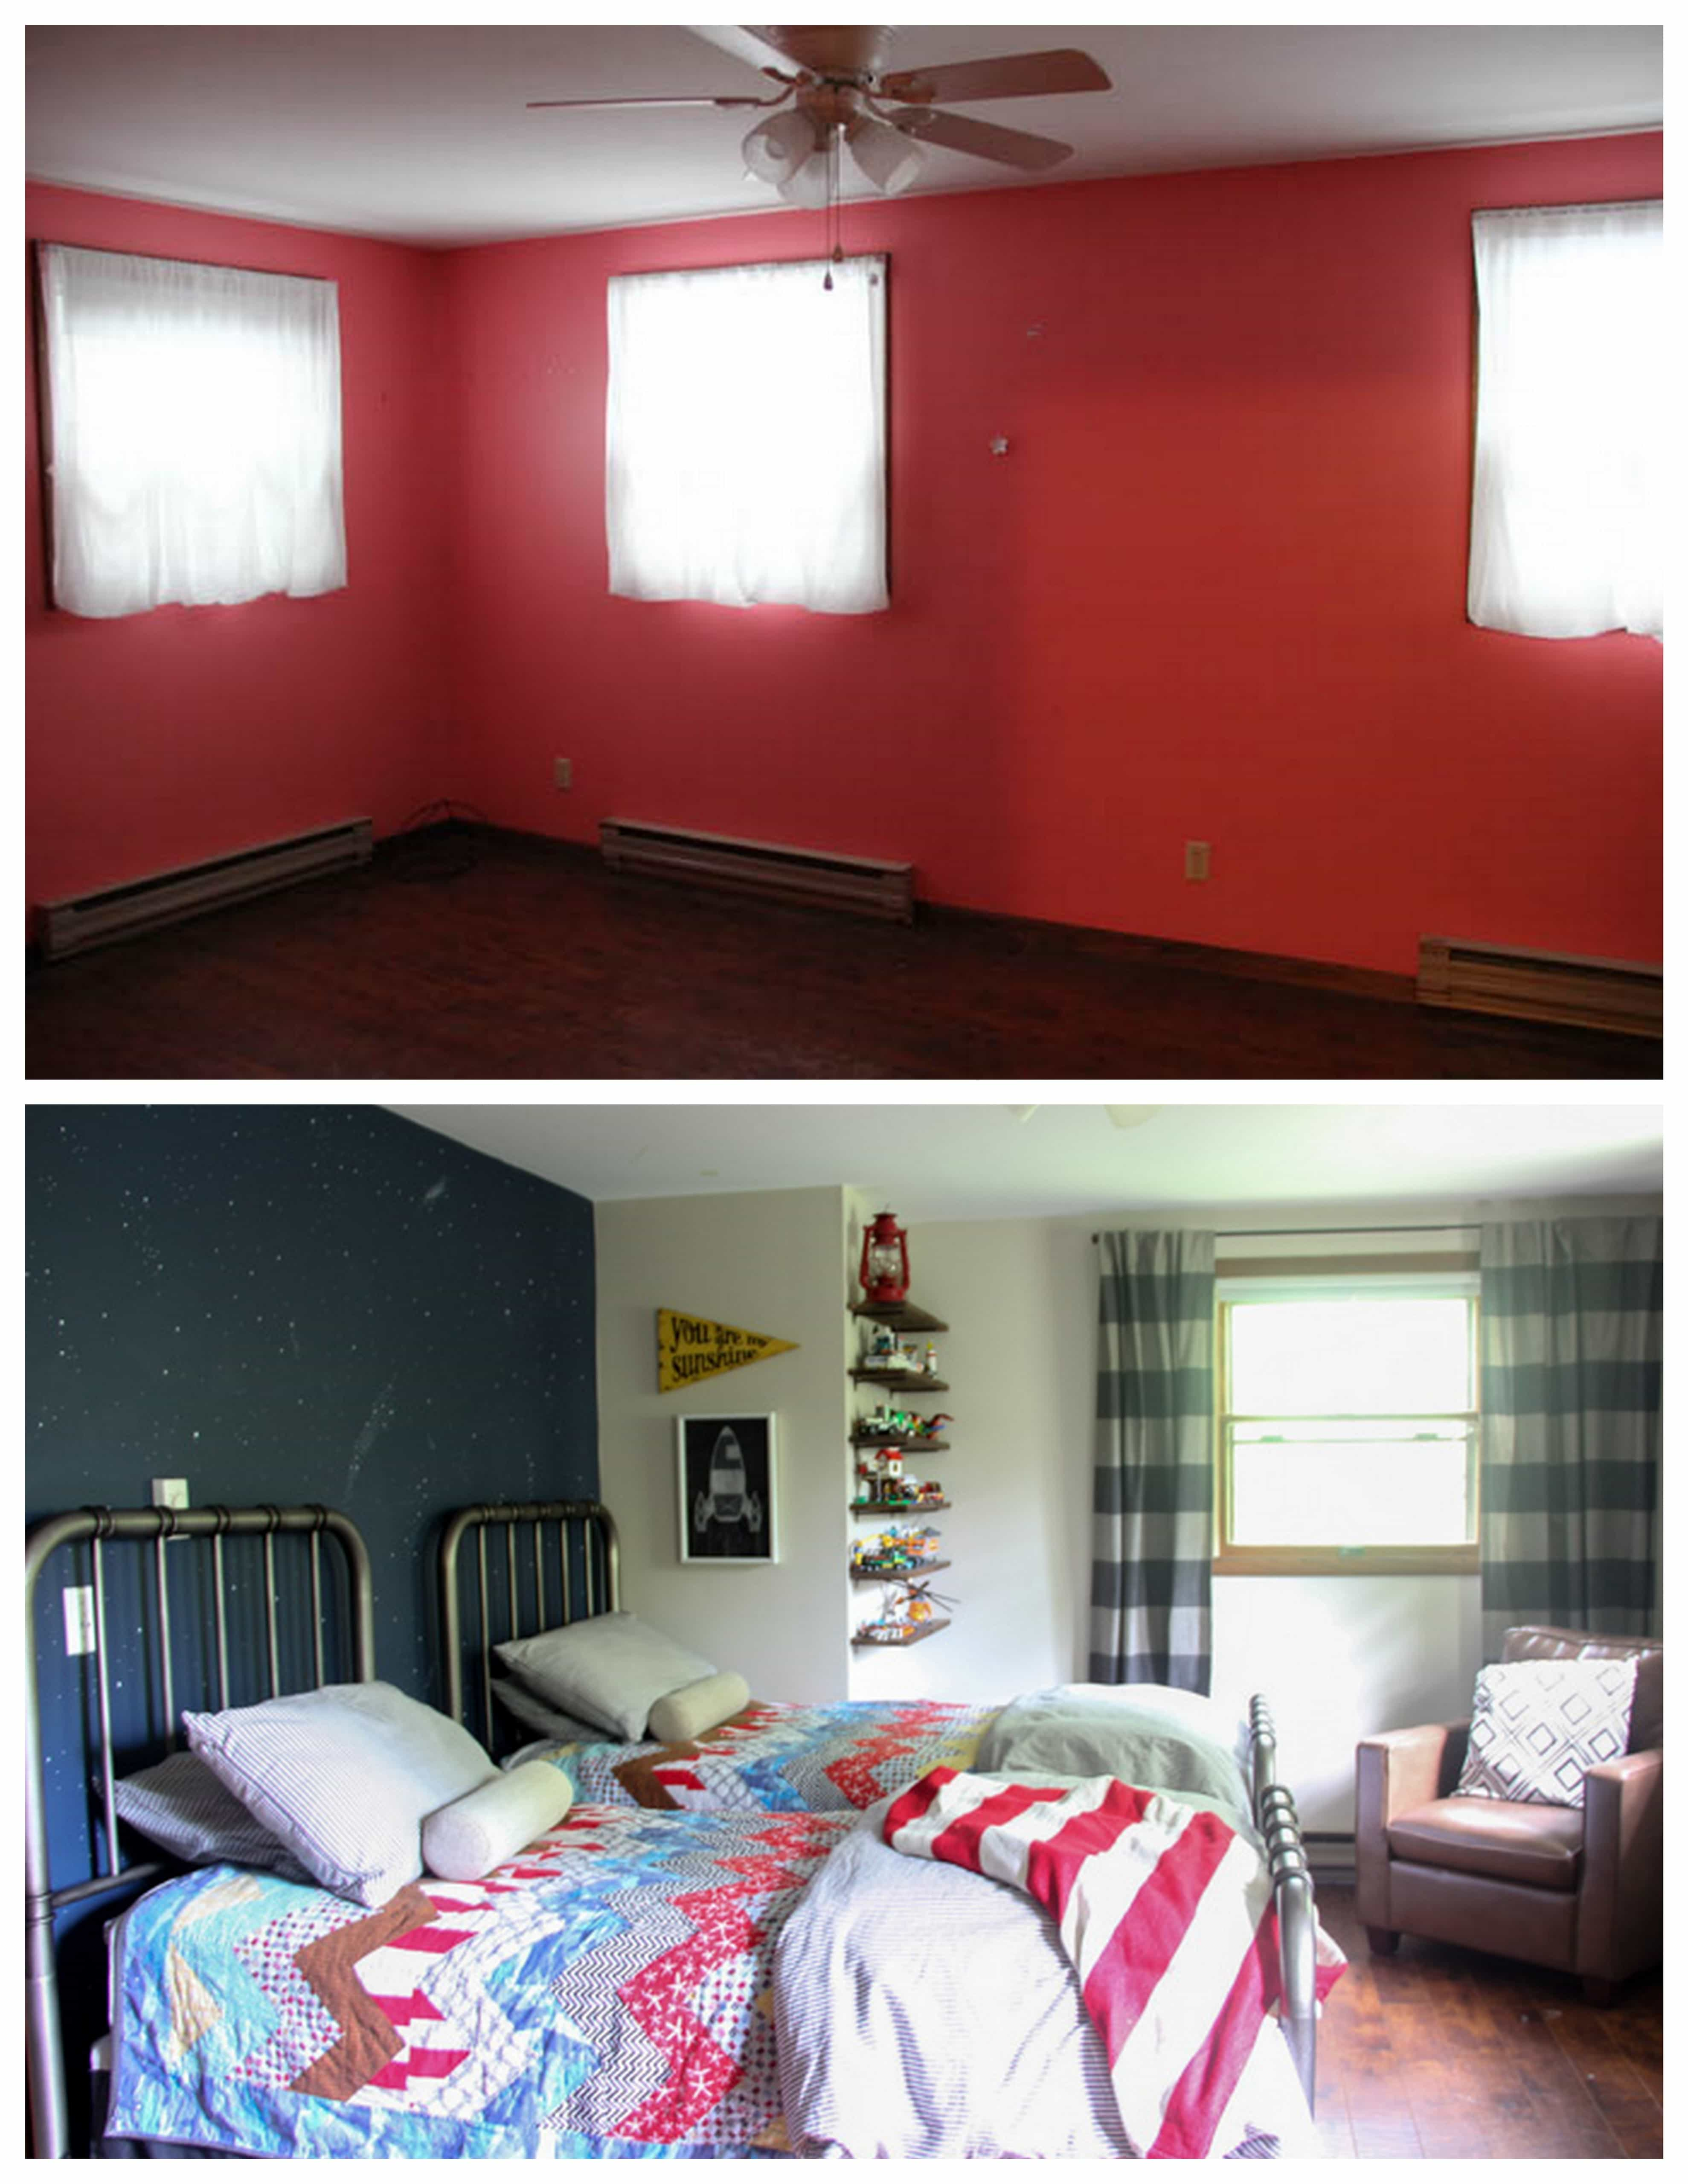 Kids Bedroom Before and After